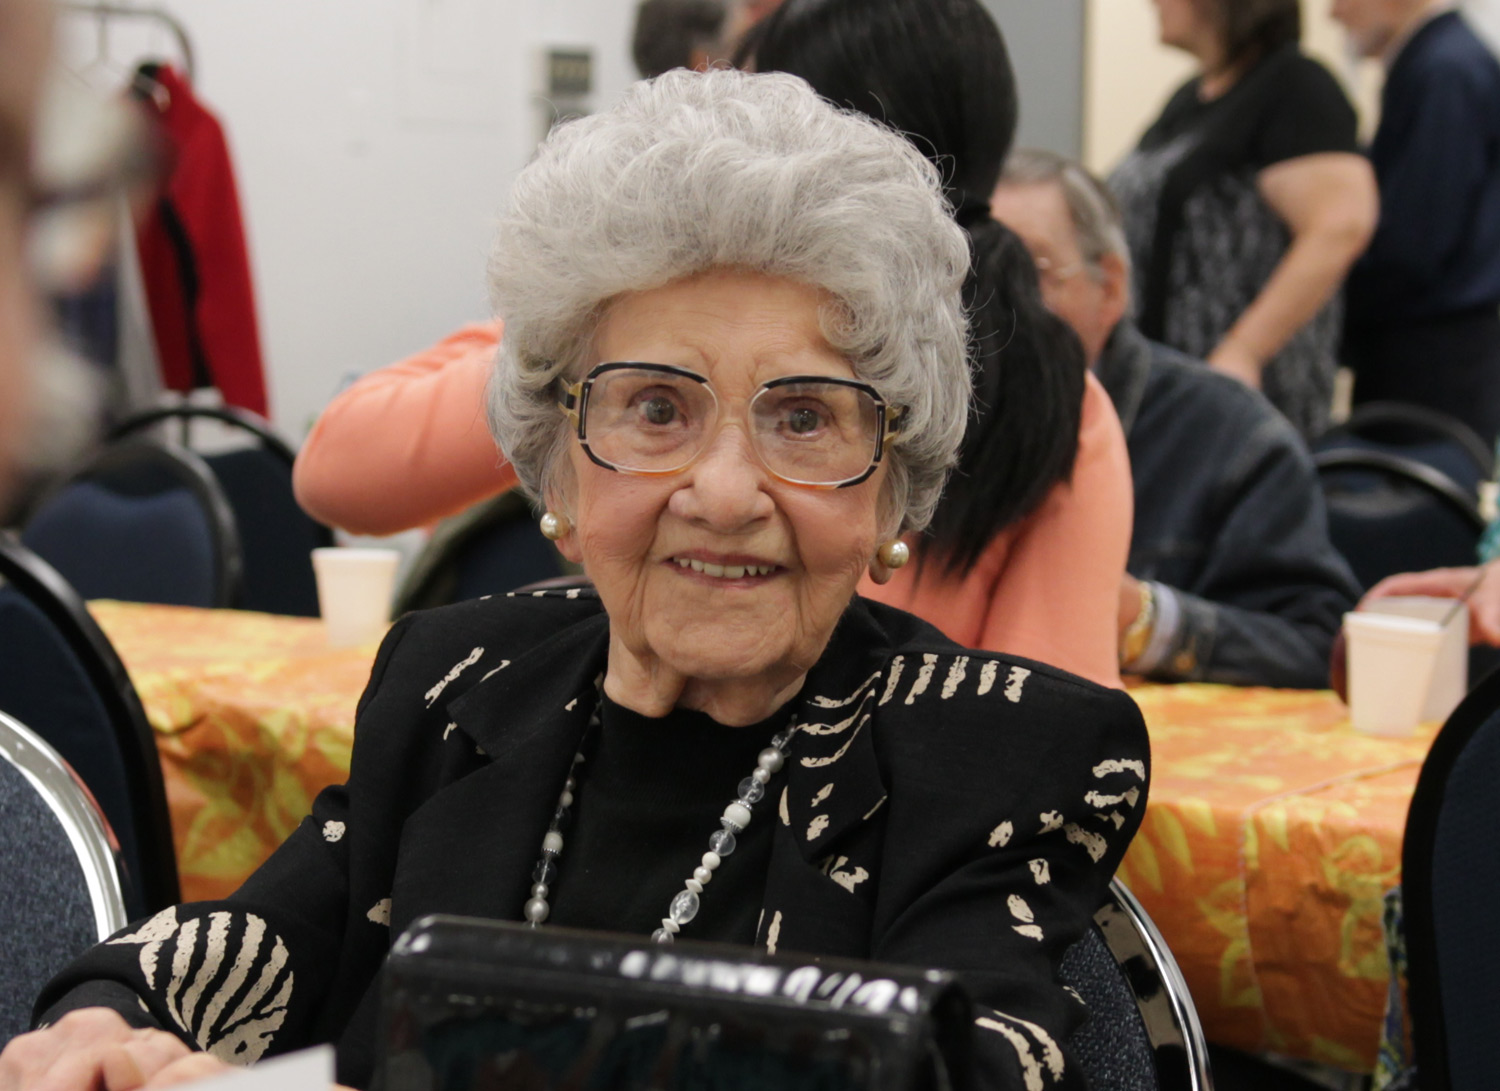 Frances Kusner, who turned 100 last April, volunteered with CVITP for 41 years. She retired this year. Thank you, Frances!